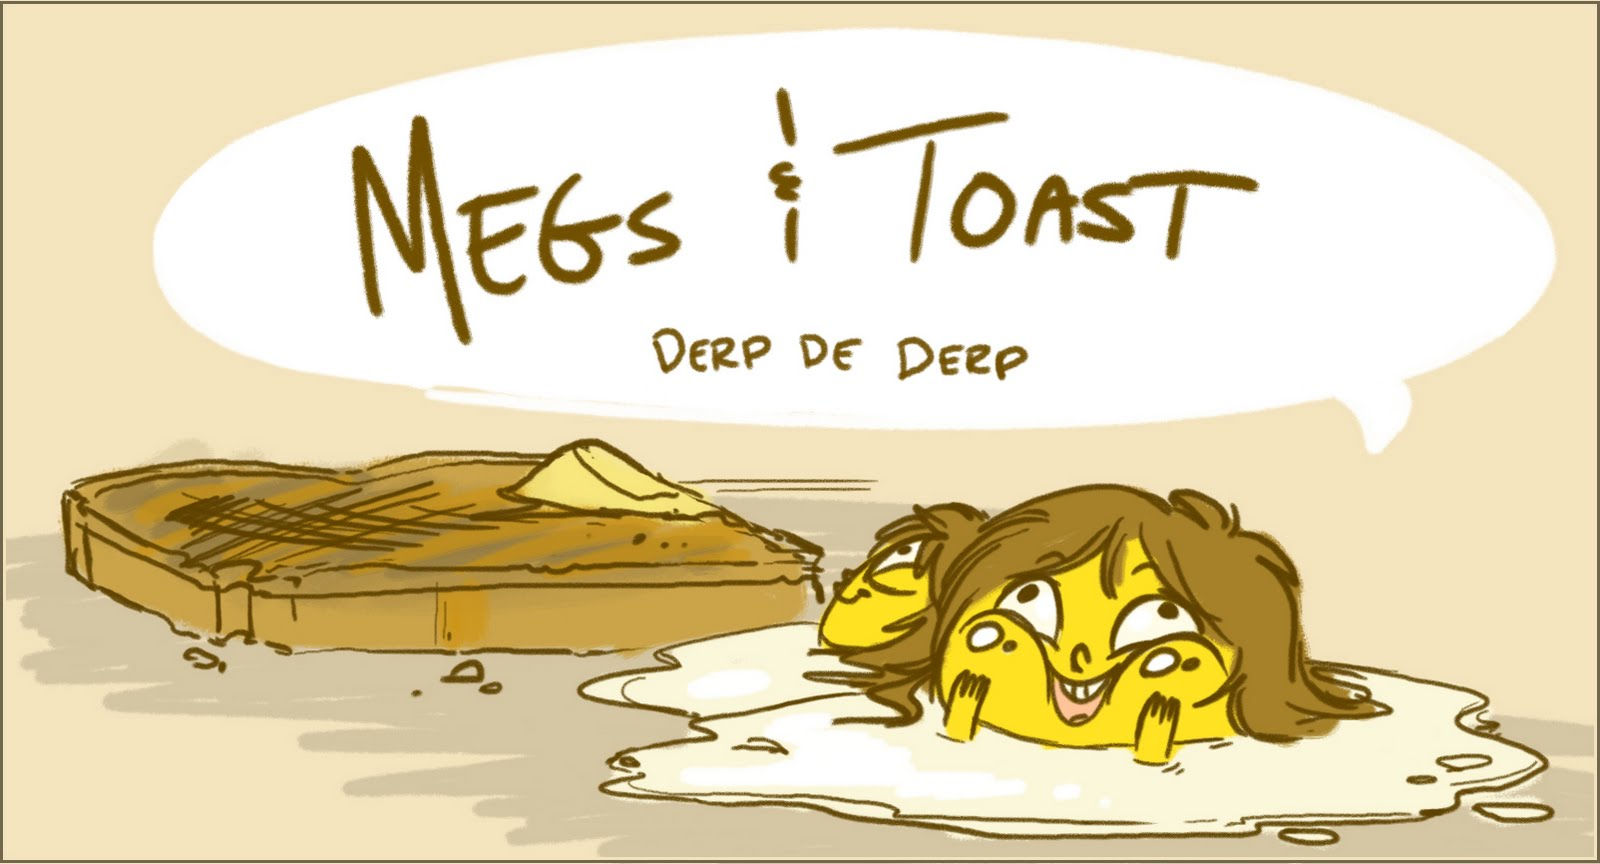 Megs and Toast